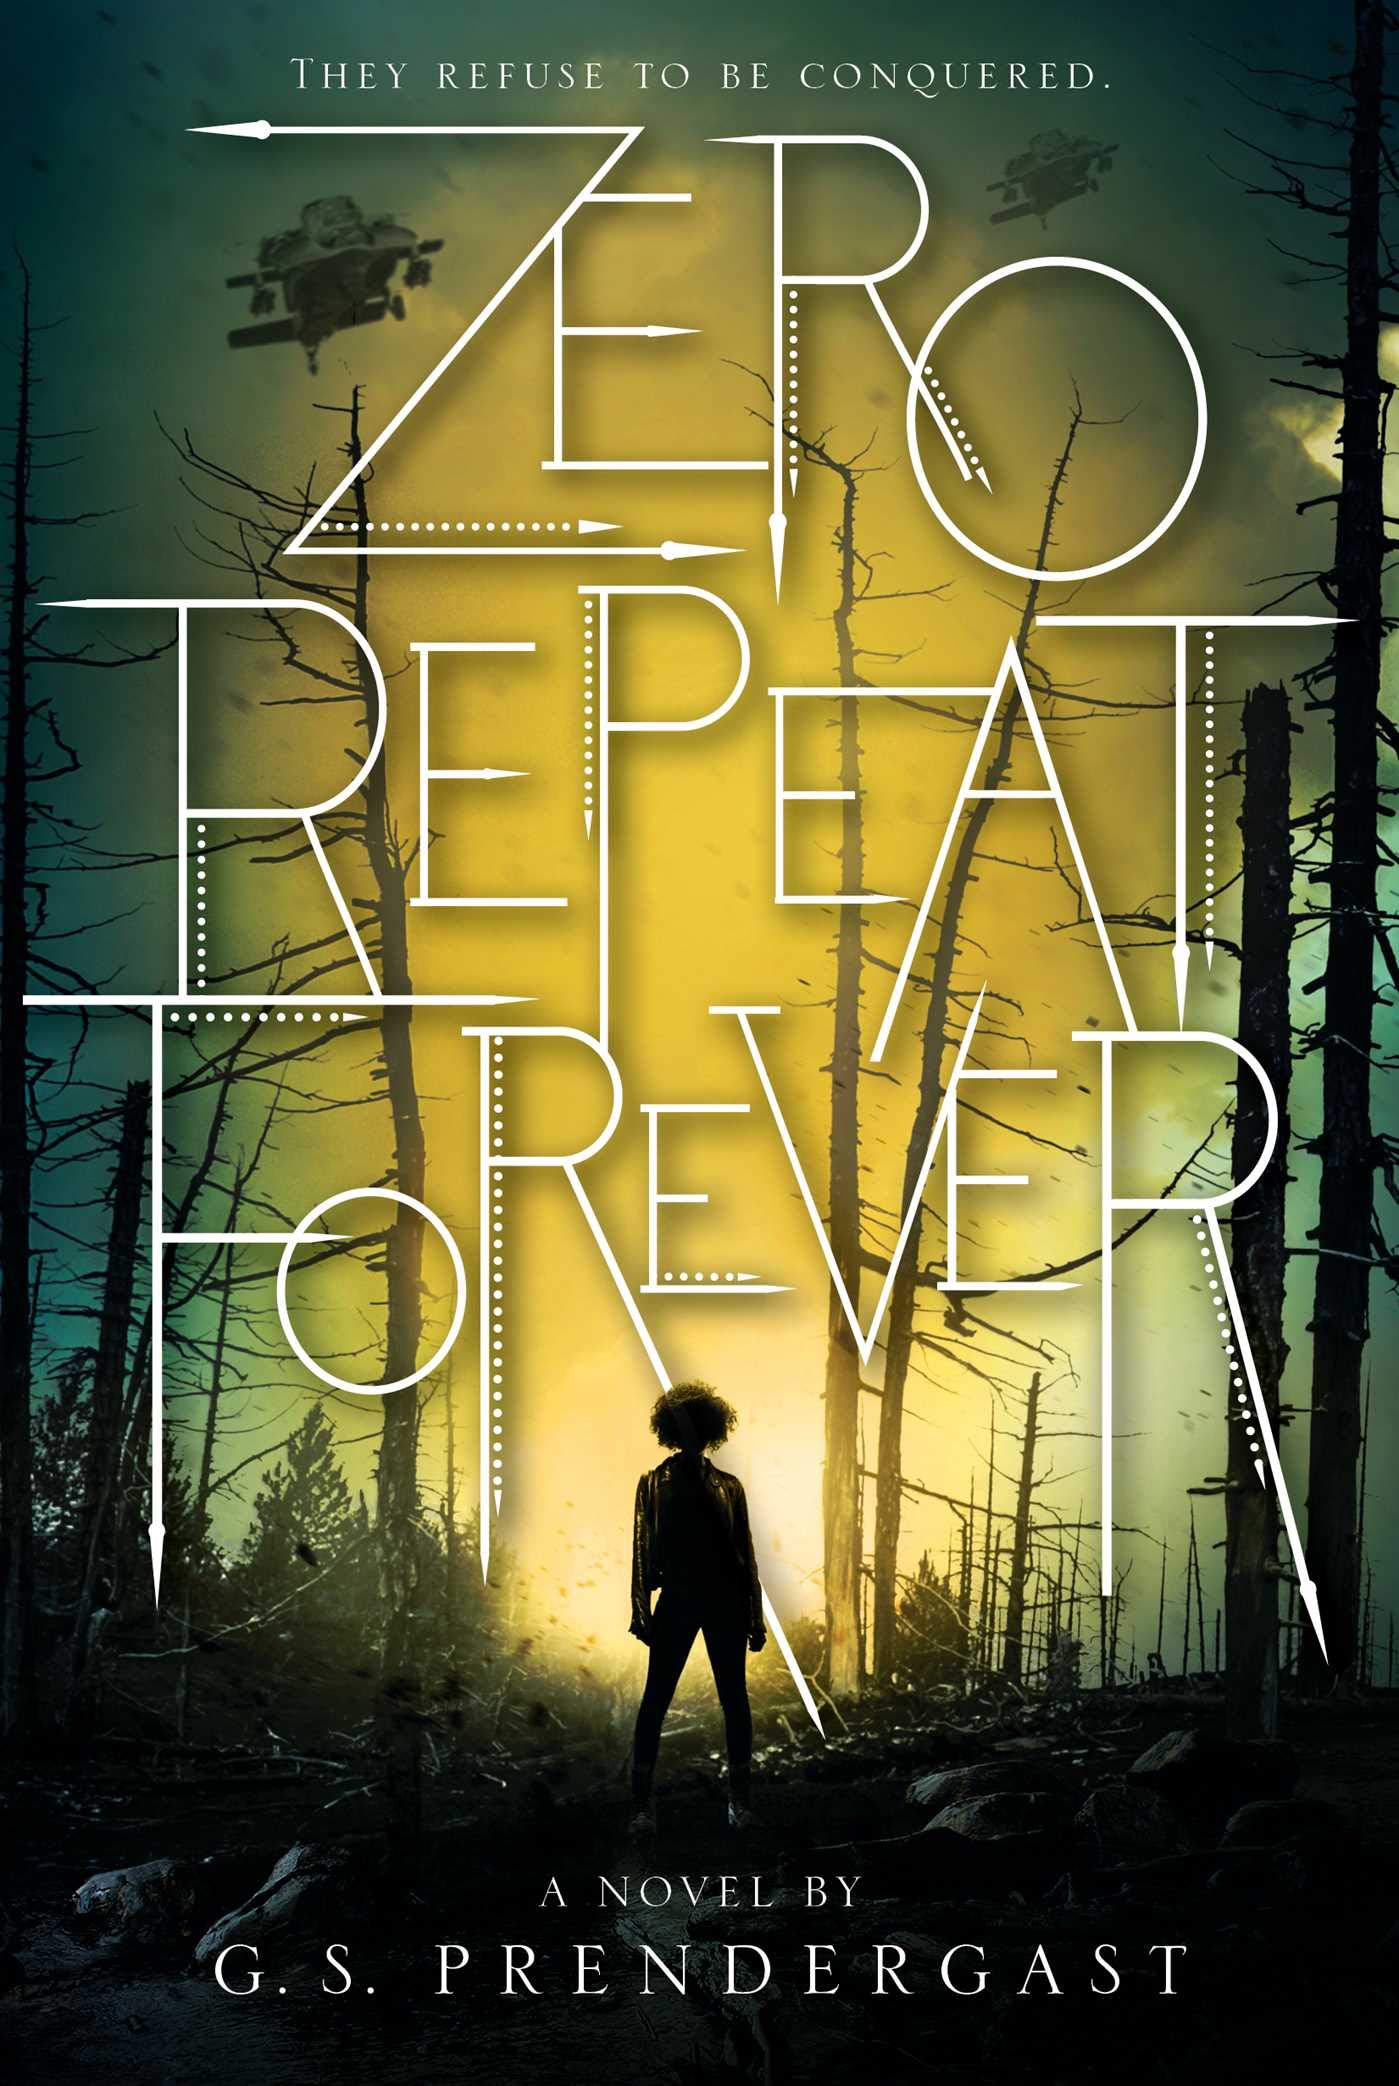 Amazon.com: Zero Repeat Forever (1) (The Nahx Invasions) (9781481481854):  Prendergast, G. S.: Books